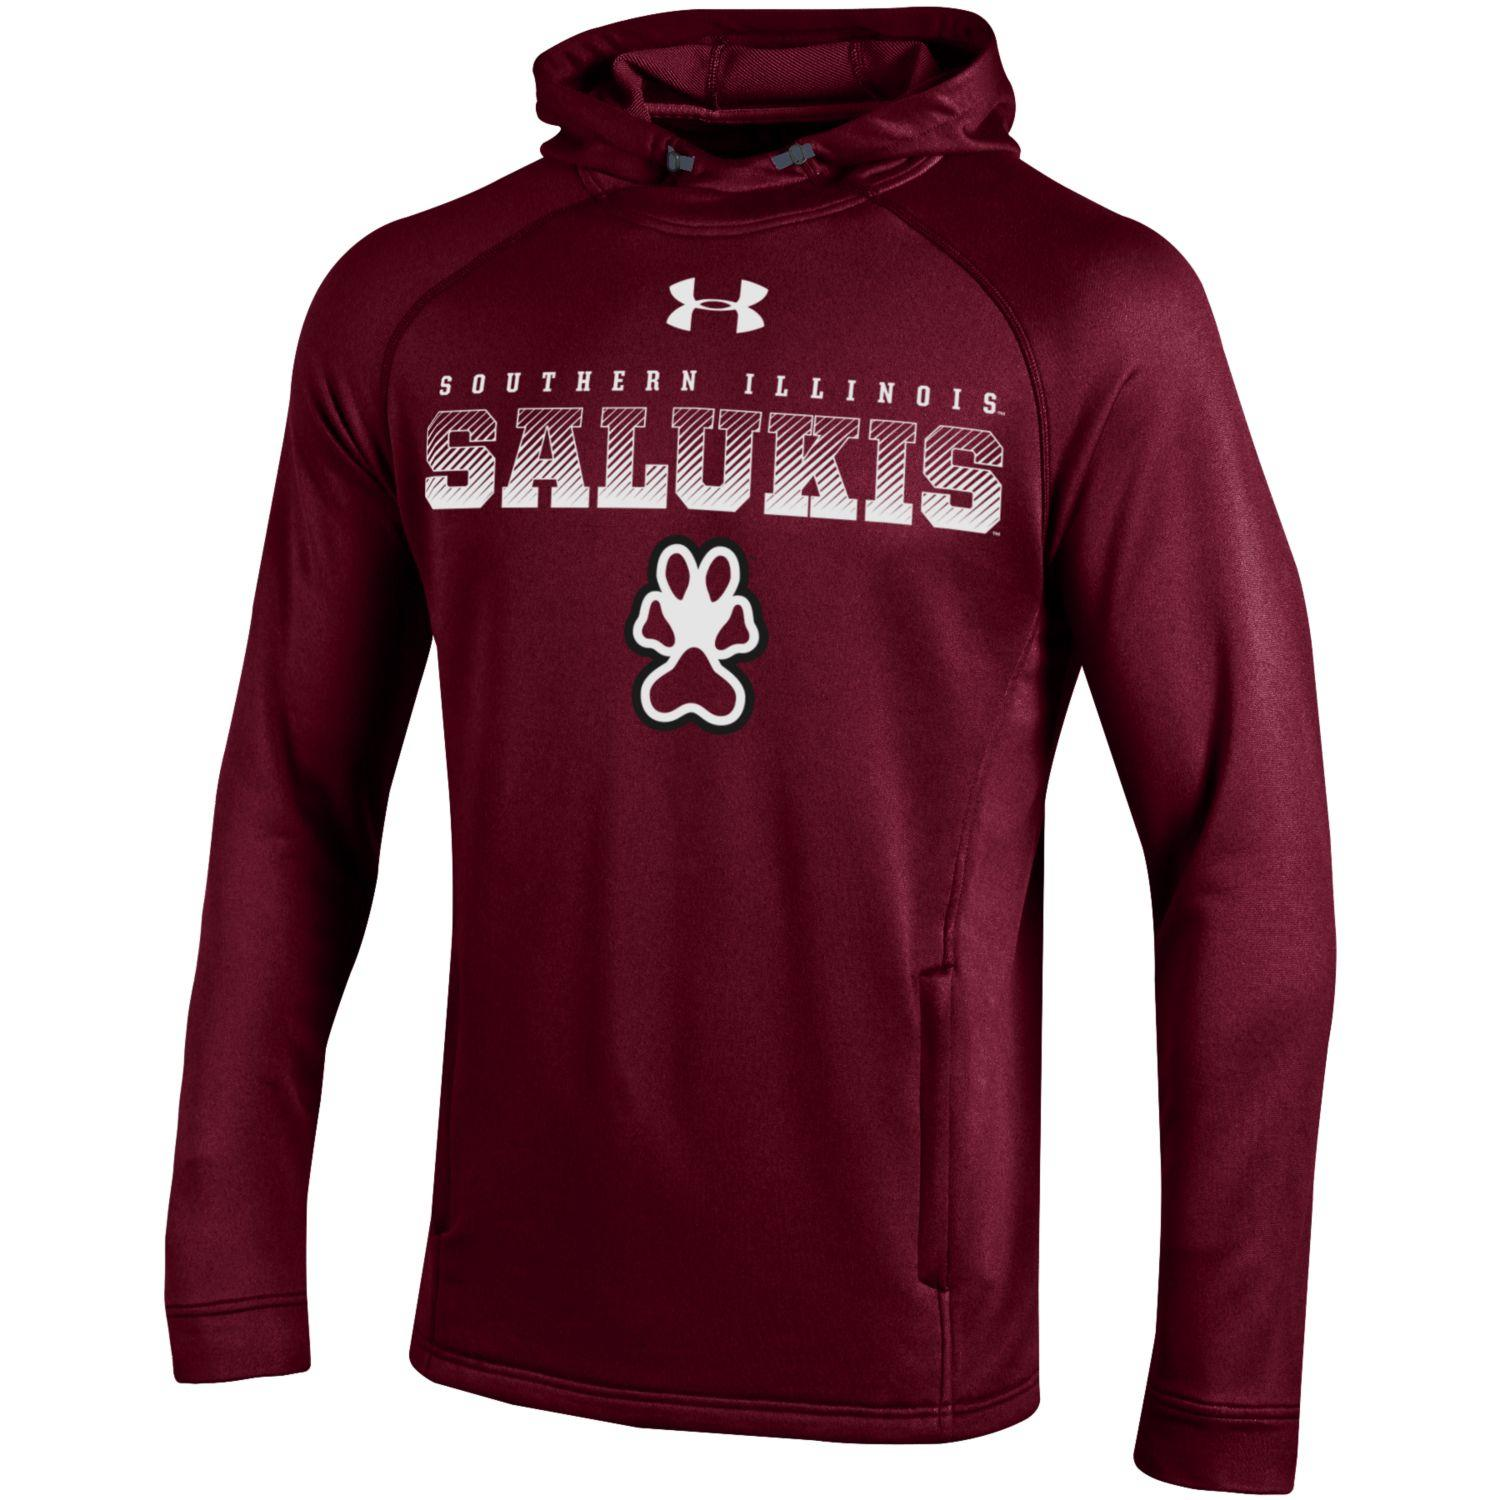 Image for the UNDER ARMOUR® SOUTHERN ILLINOIS SALUKIS TECH TERRY HOOD product